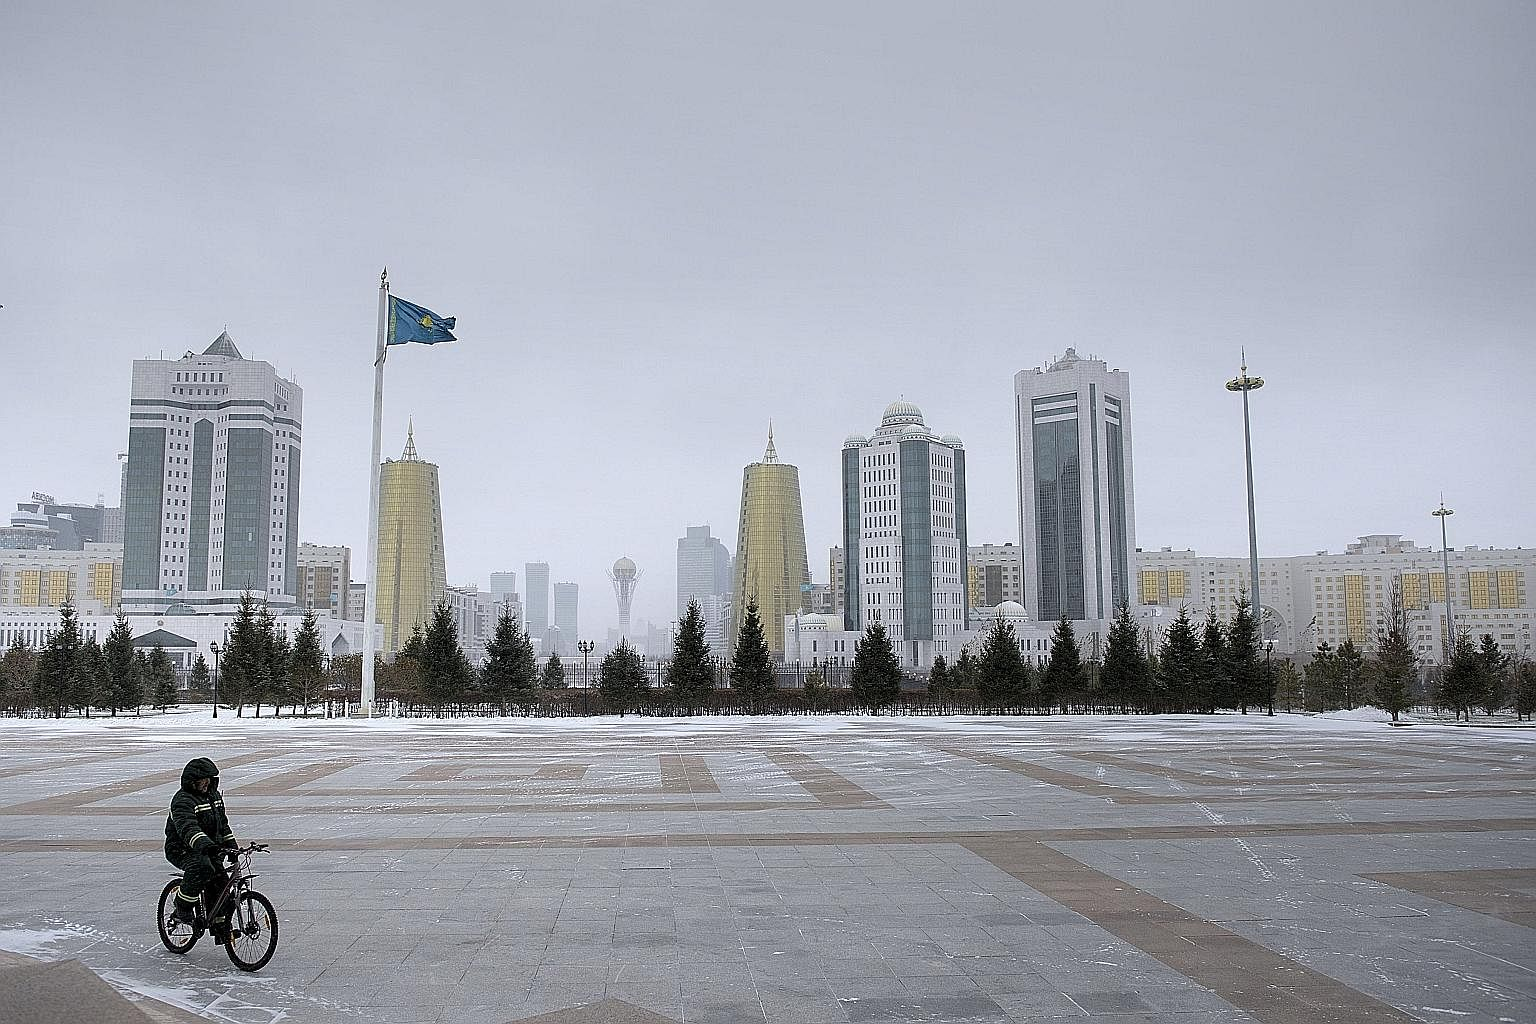 Last month, Astana (left) was host to the inaugural meeting of the Astana Club - a platform for private dialogue among policy analysts, business figures and political leaders about issues in Central Asia. The meeting revealed new dynamics of great-po